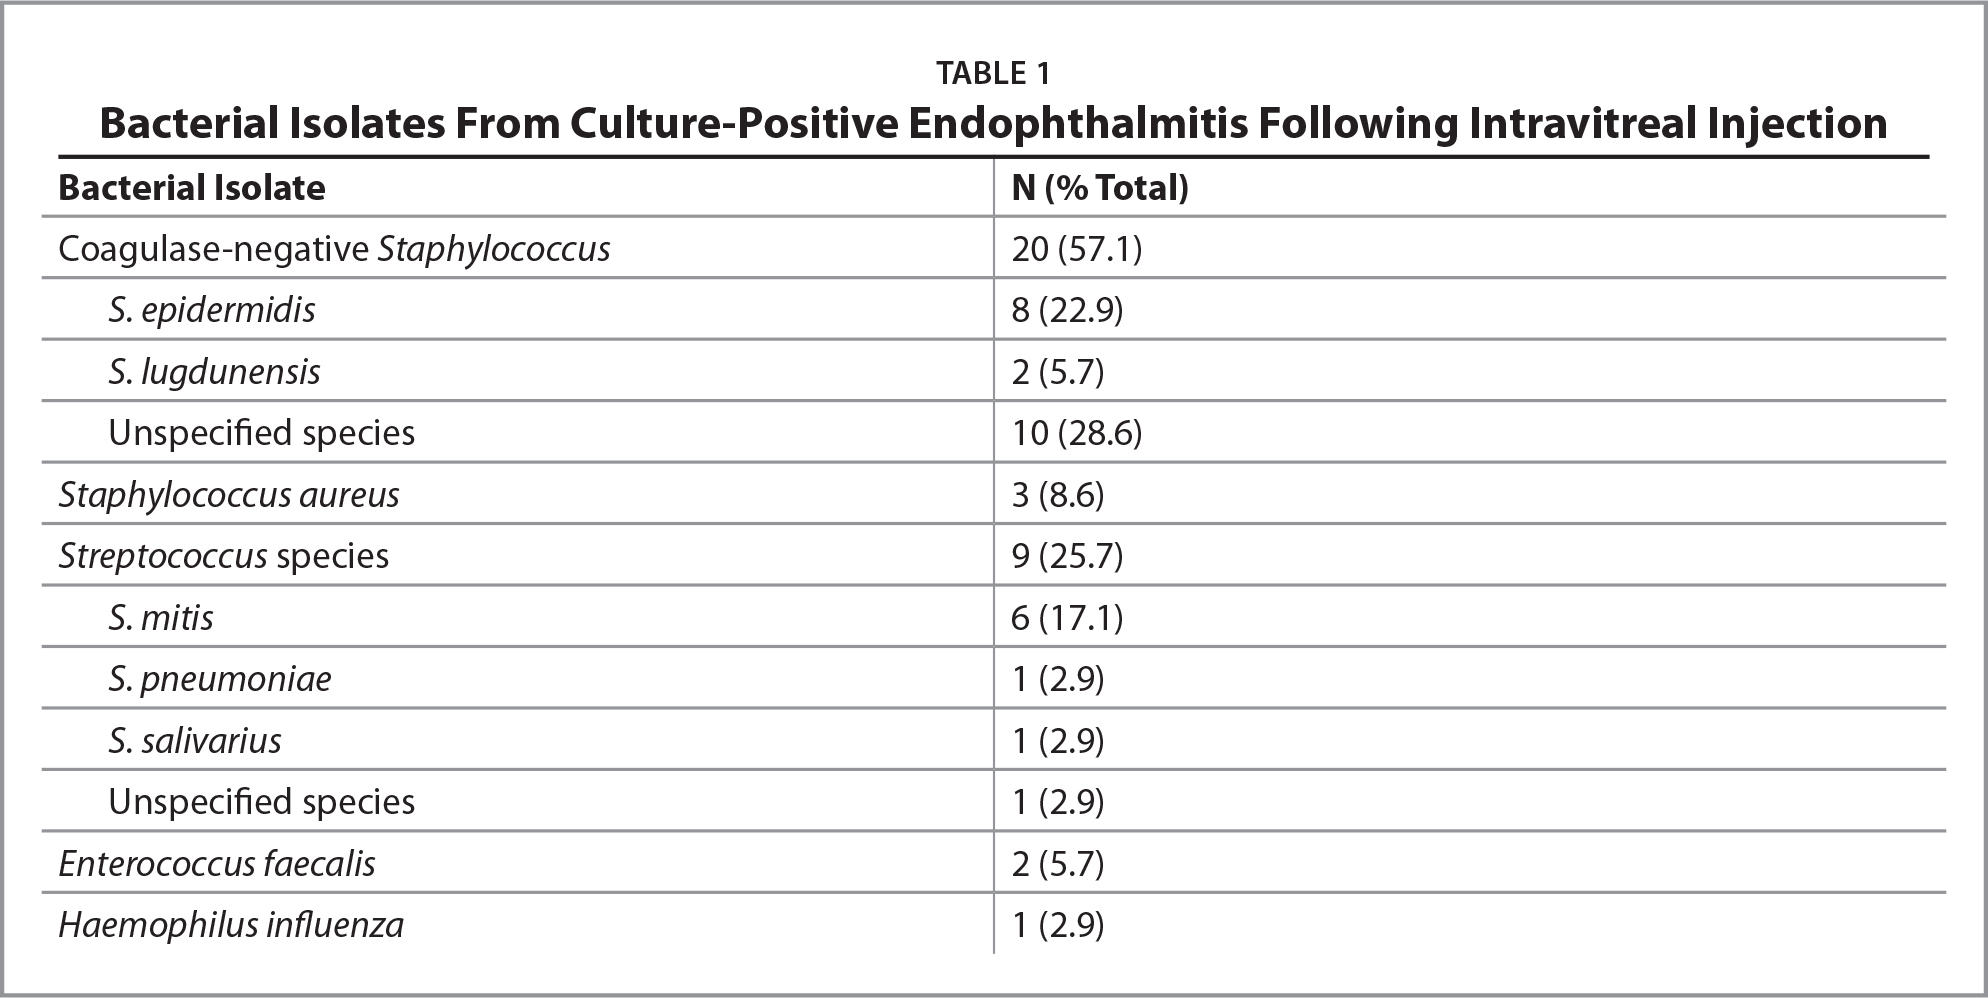 Bacterial Isolates From Culture-Positive Endophthalmitis Following Intravitreal Injection